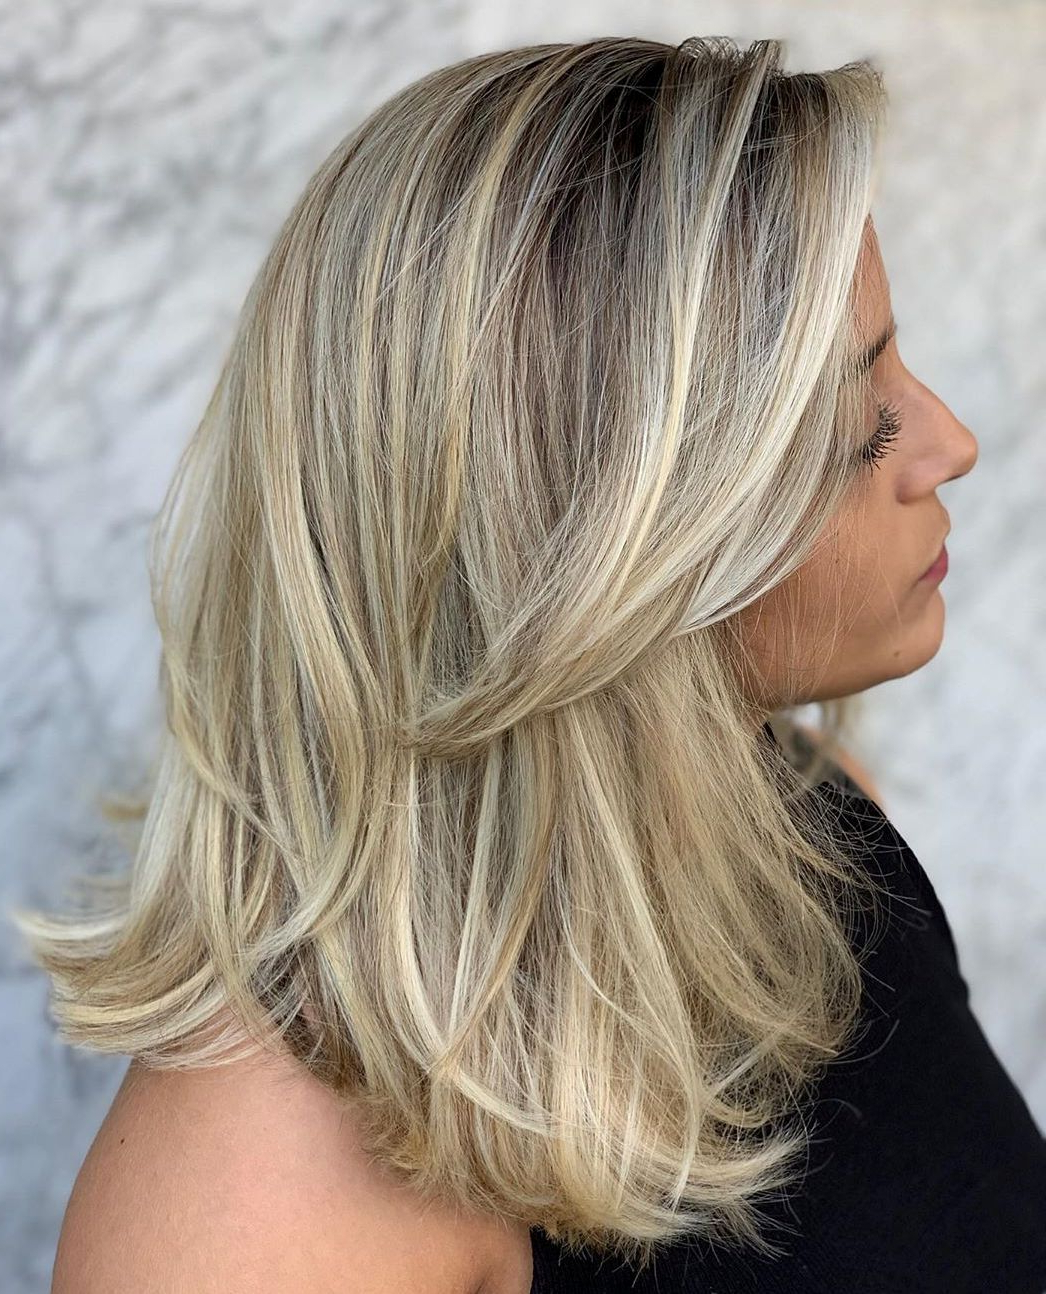 40 Medium Length Hairstyles For Thick Hair ⋆ Palau Oceans Inside Popular Shiny Caramel Layers Long Shag Haircuts (View 2 of 20)